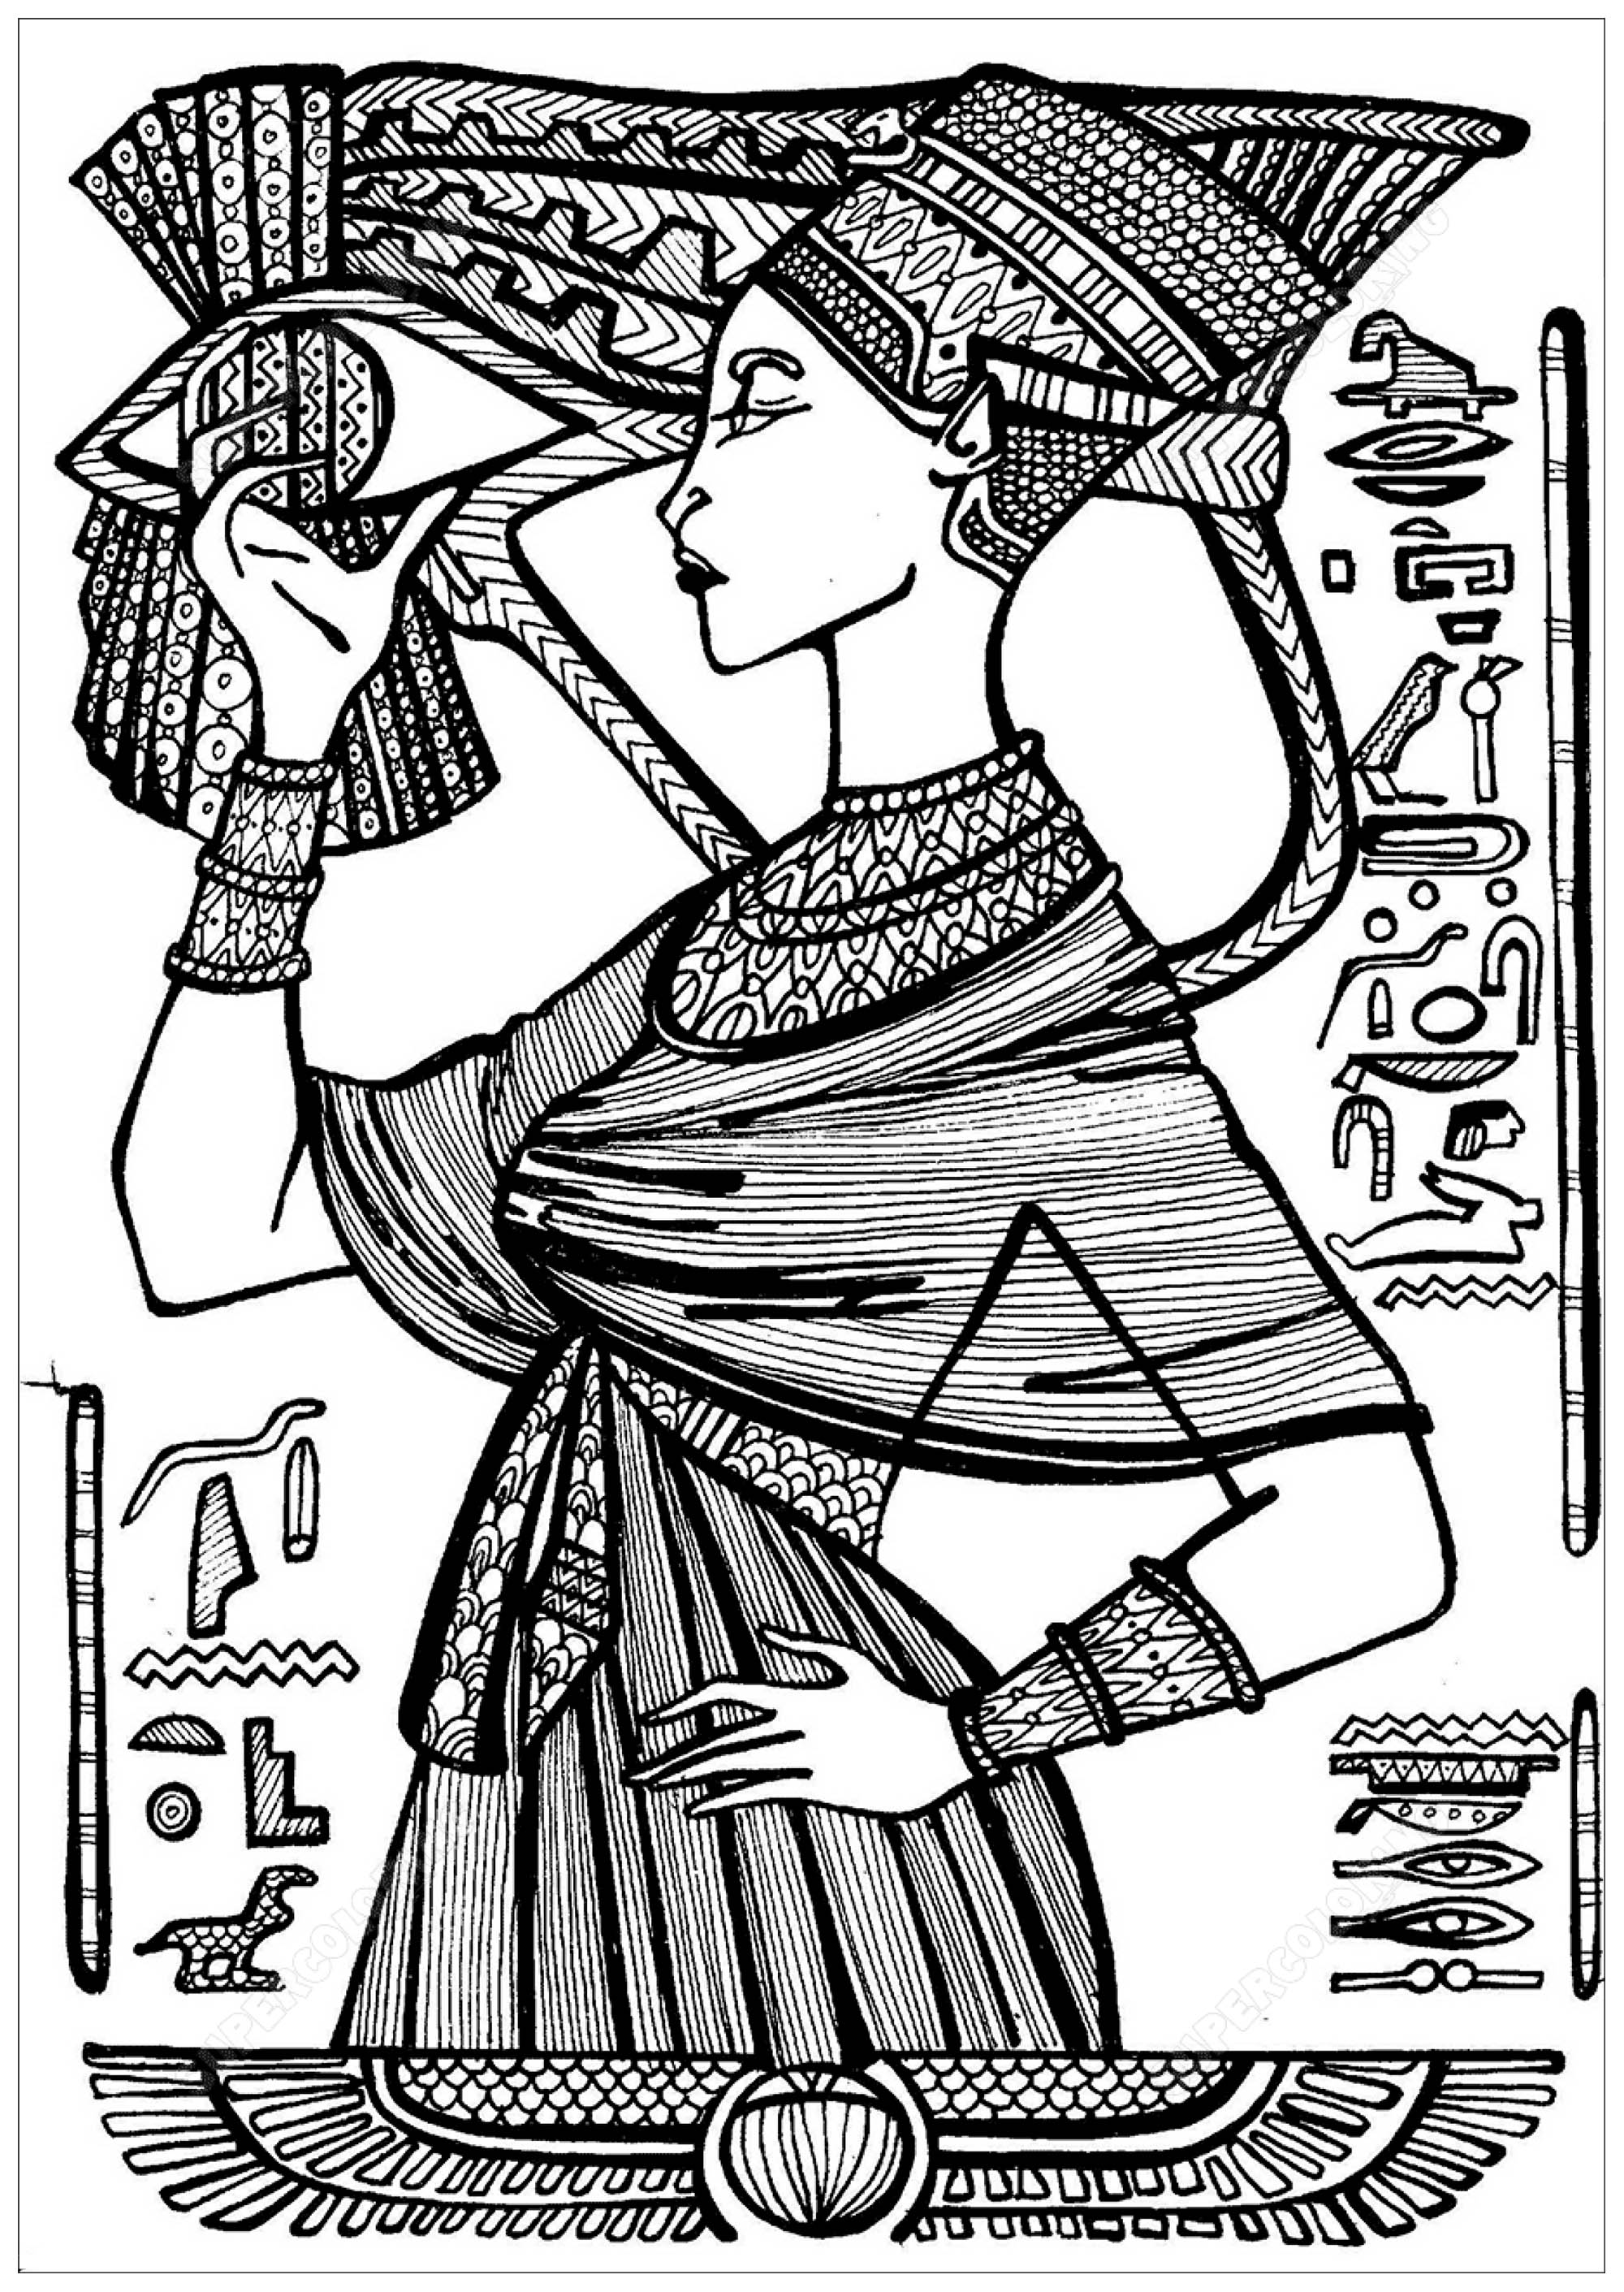 cleopatra coloring page free cleopatra cliparts download free clip art free clip page coloring cleopatra